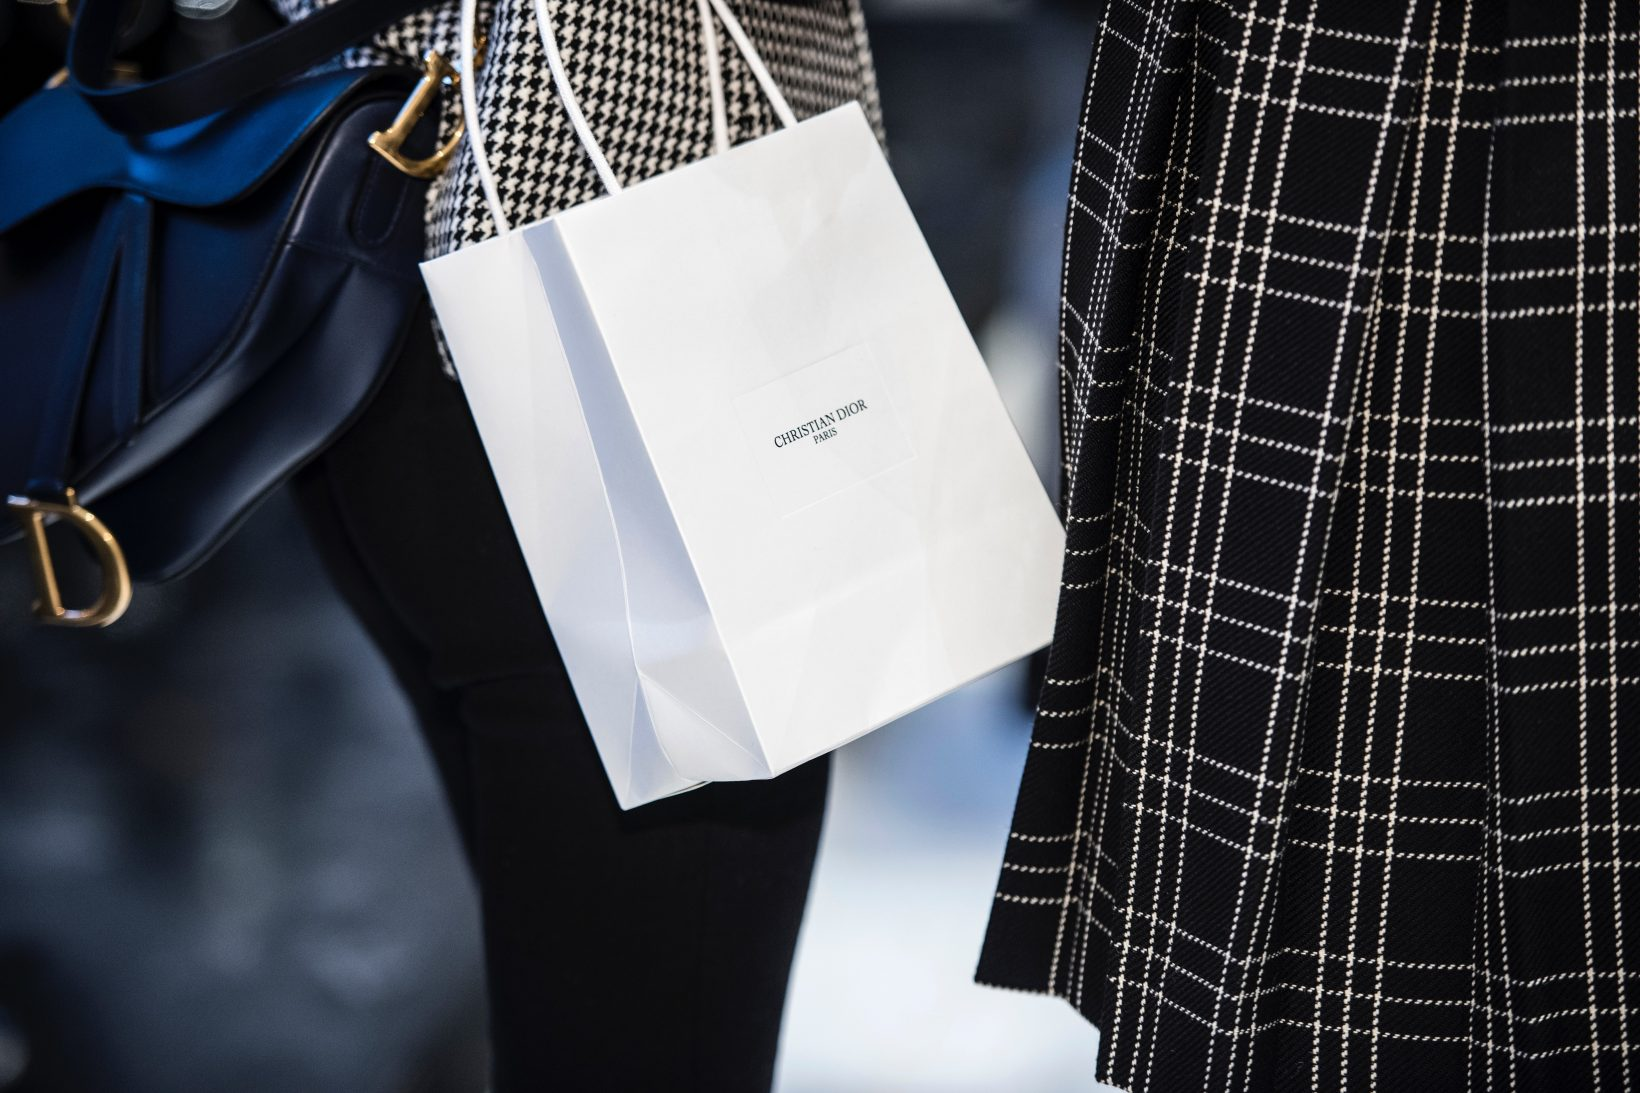 Luxury needs to adapt to real-time demand